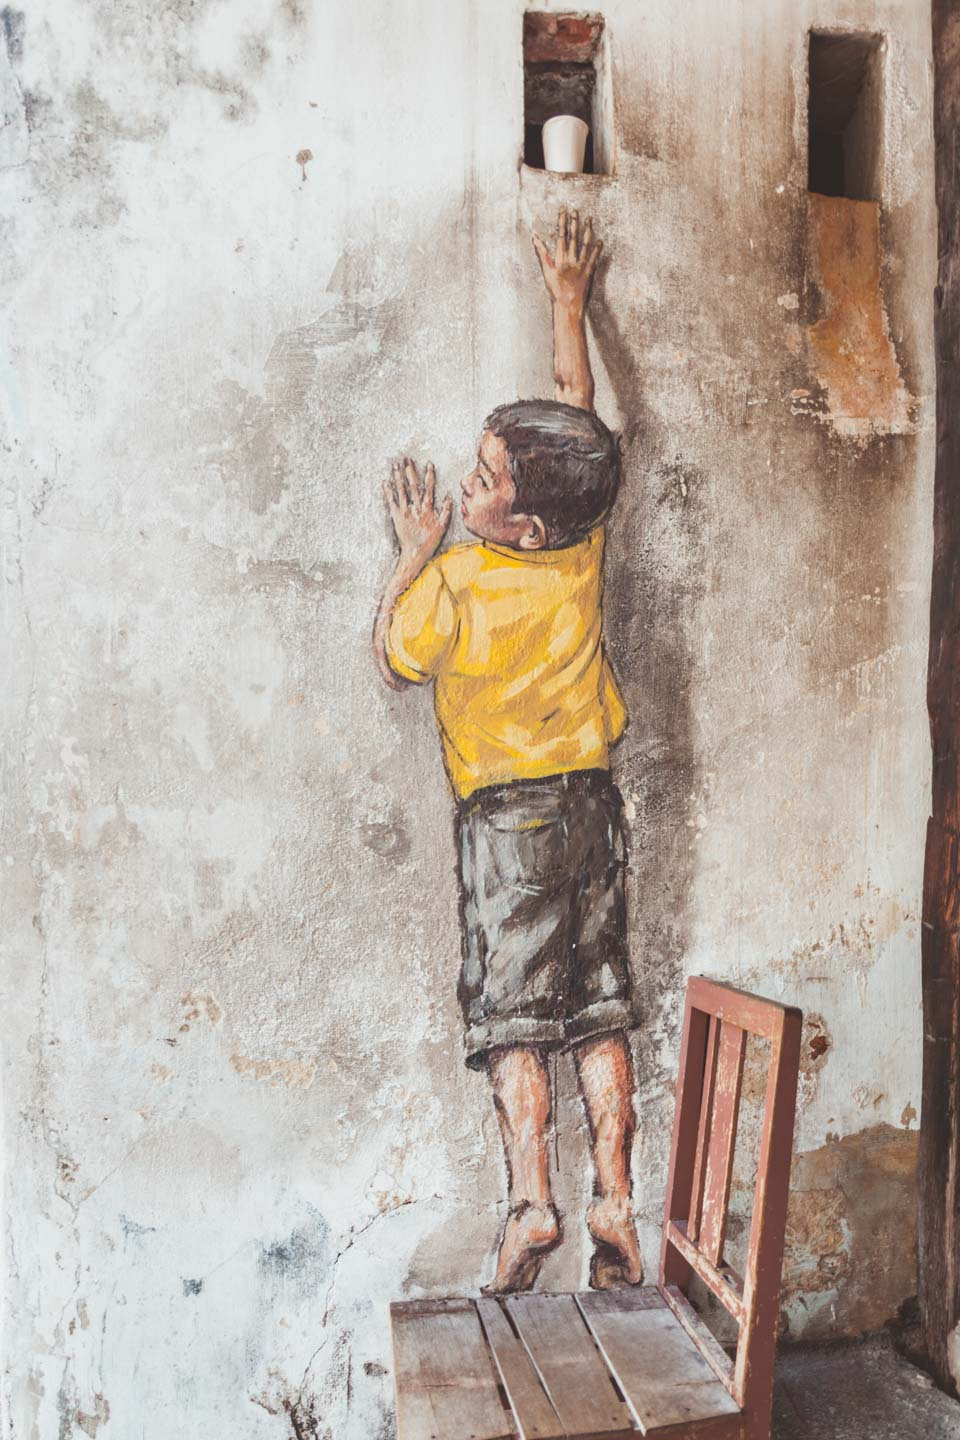 Ernest Zacharevic, Boy on Chair, Reaching Up, Penang Street Art, Malaysia